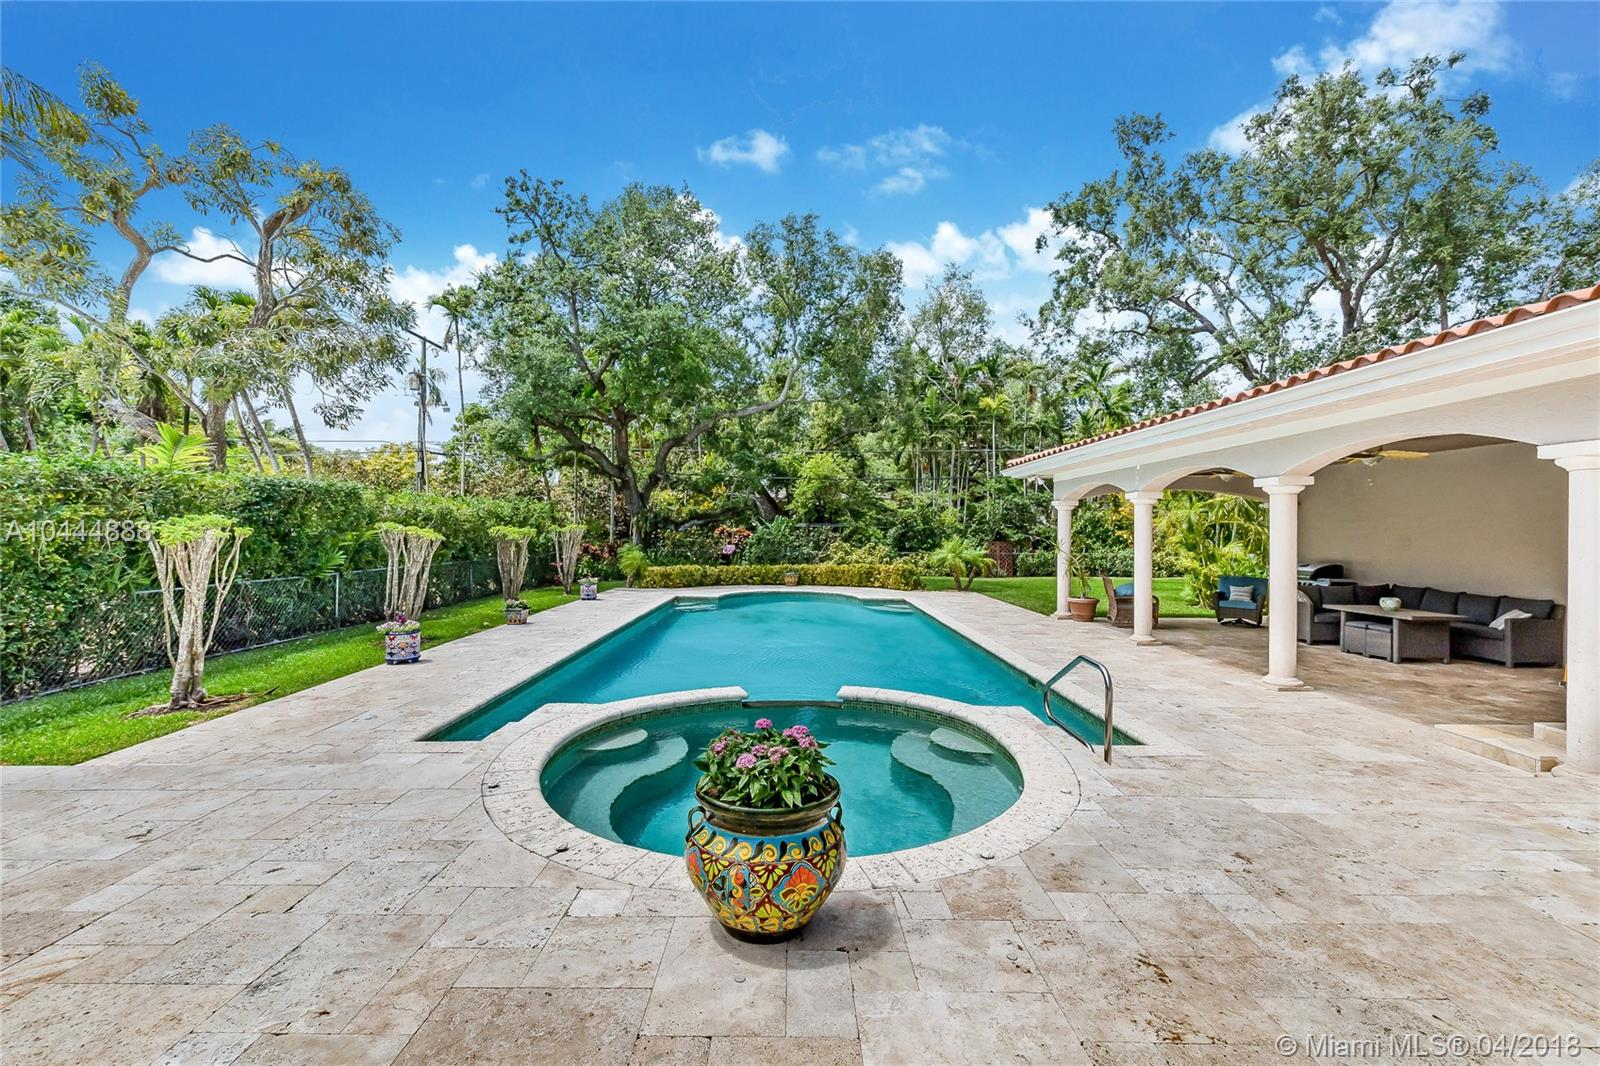 JUST SOLD! 2604 N. Greenway Drive, Coral Gables FL